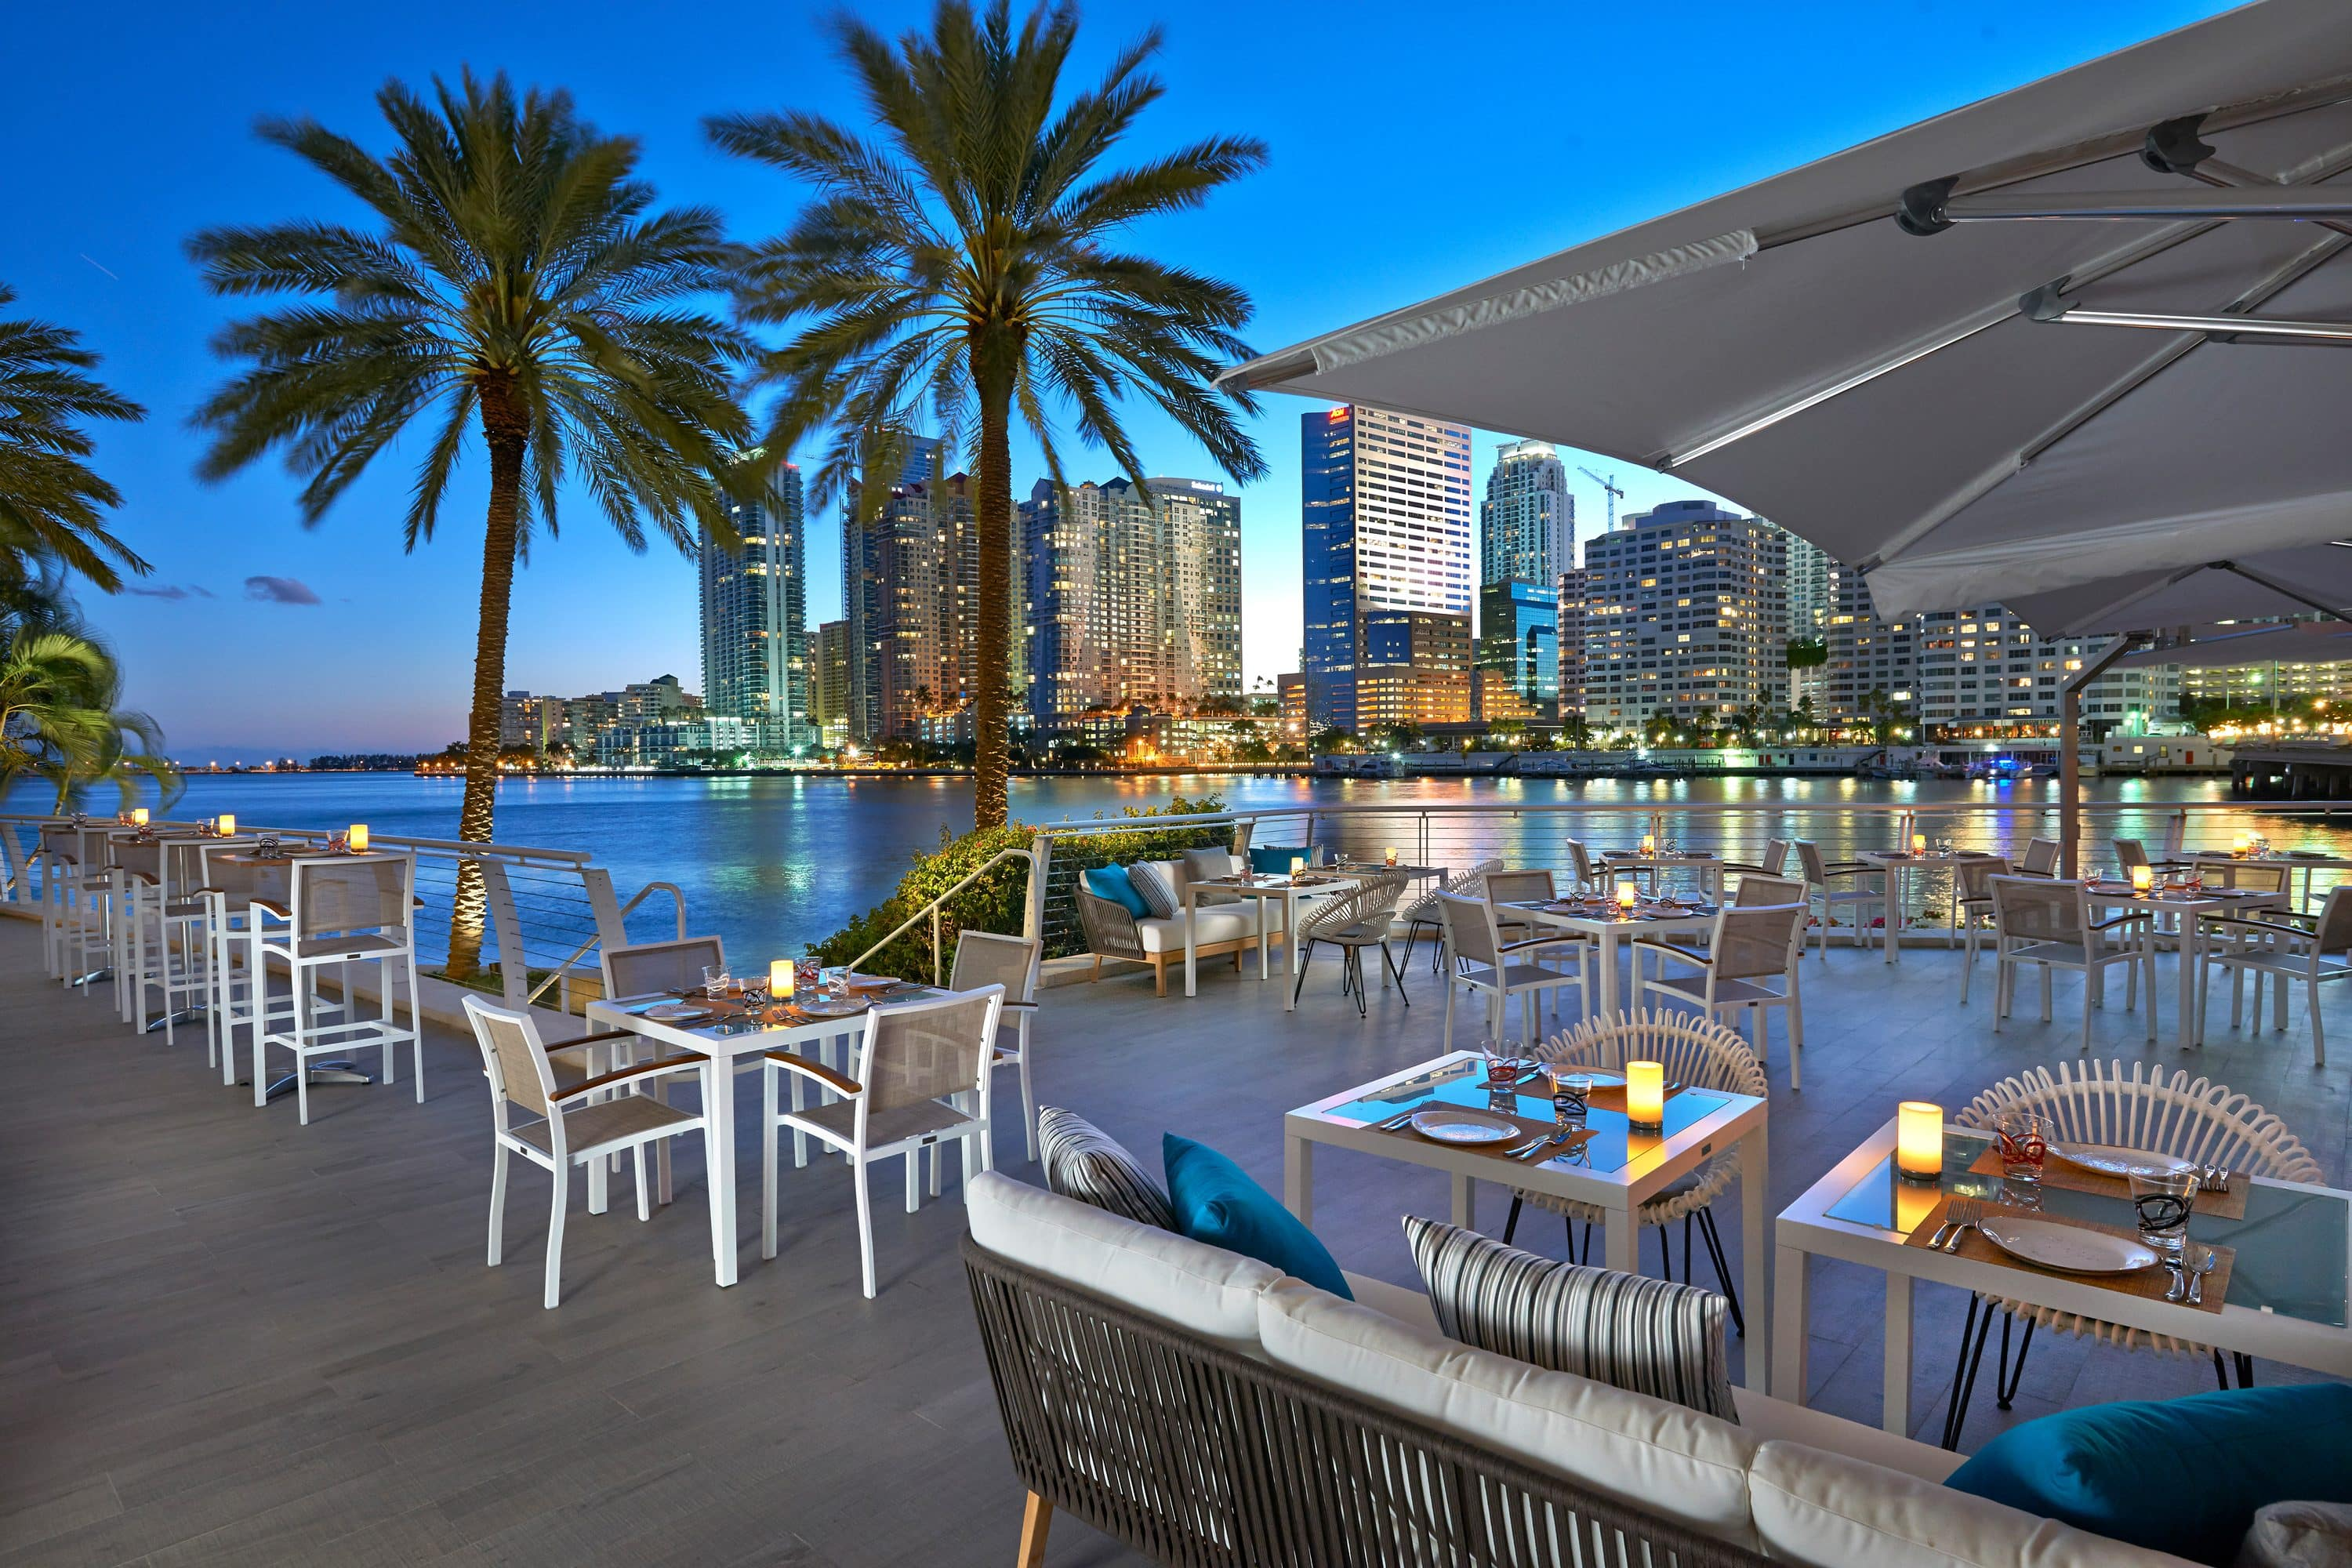 Terrace of La Mar restaurant at Mandarin Oriental, Miami